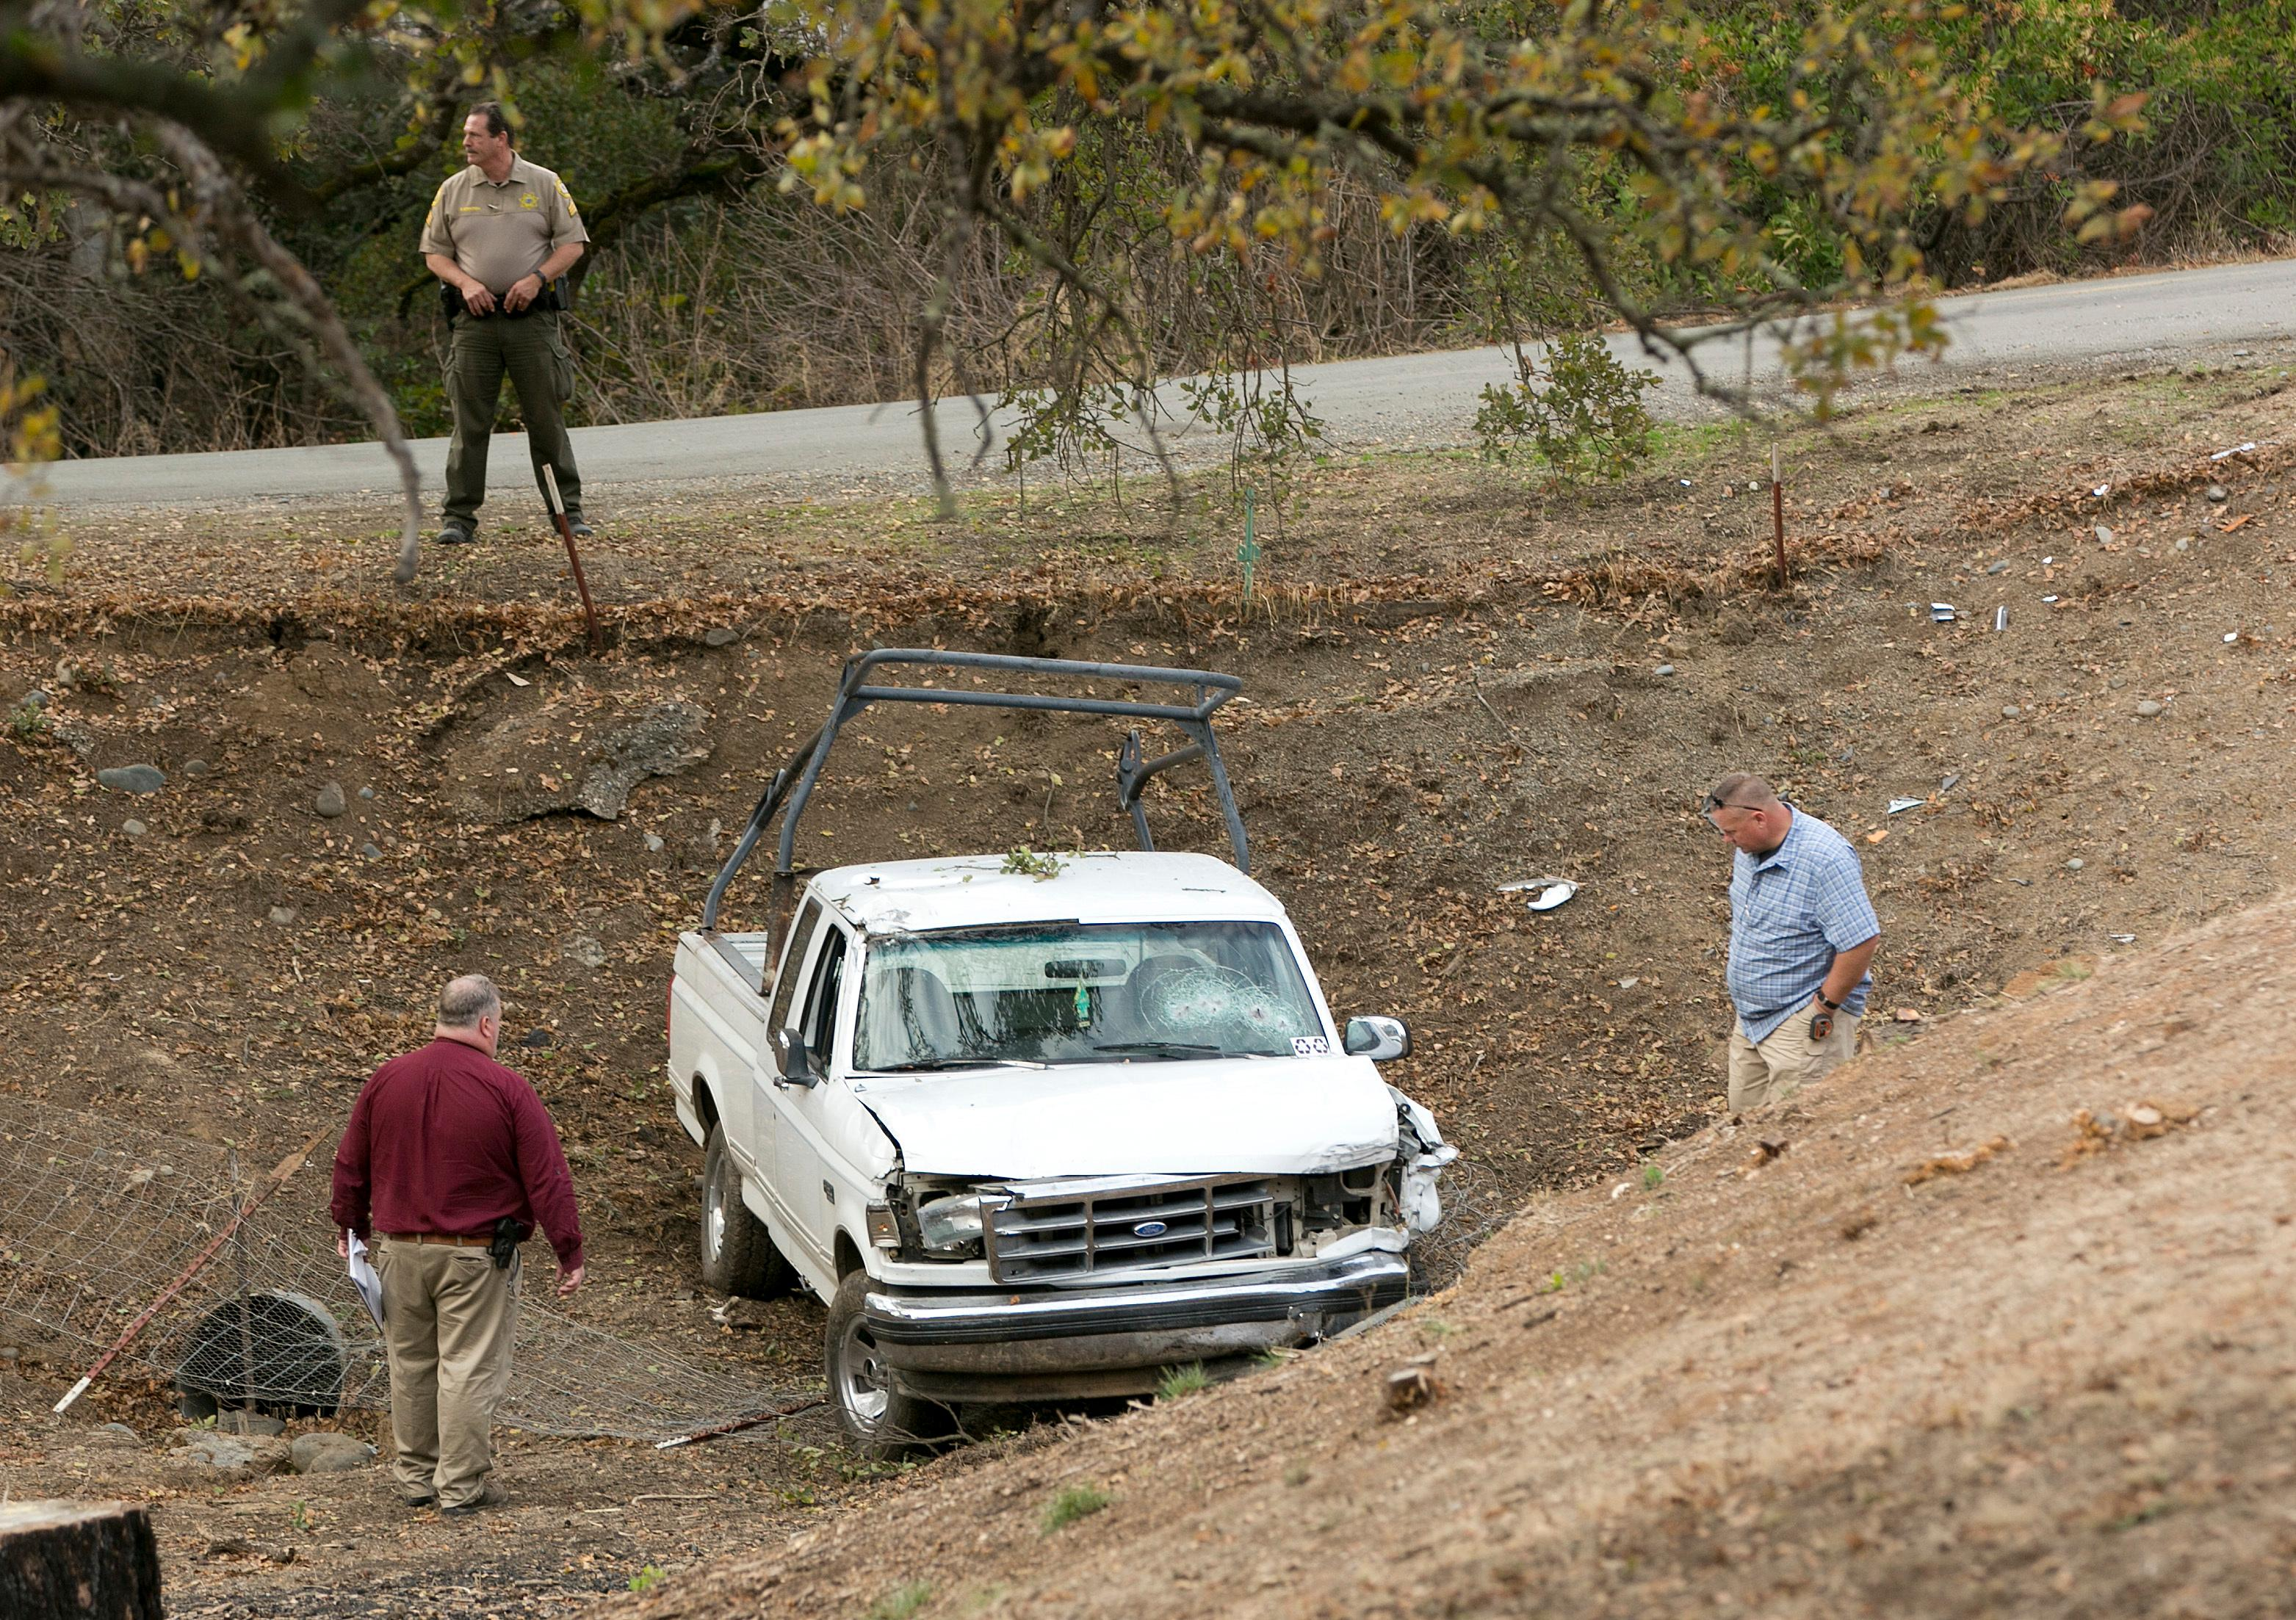 "Investigators view a pickup truck involved in a deadly shooting rampage at the Rancho Tehama Reserve, near Corning, Calif., Tuesday, Nov. 14, 2017. A gunman driving stolen vehicles and choosing his targets at random opened fire ""without provocation"" in the tiny, rural Northern California town Tuesday, killing several people, including a student at an elementary school, before police shot him dead, authorities said. (AP Photo/Rich Pedroncelli)"